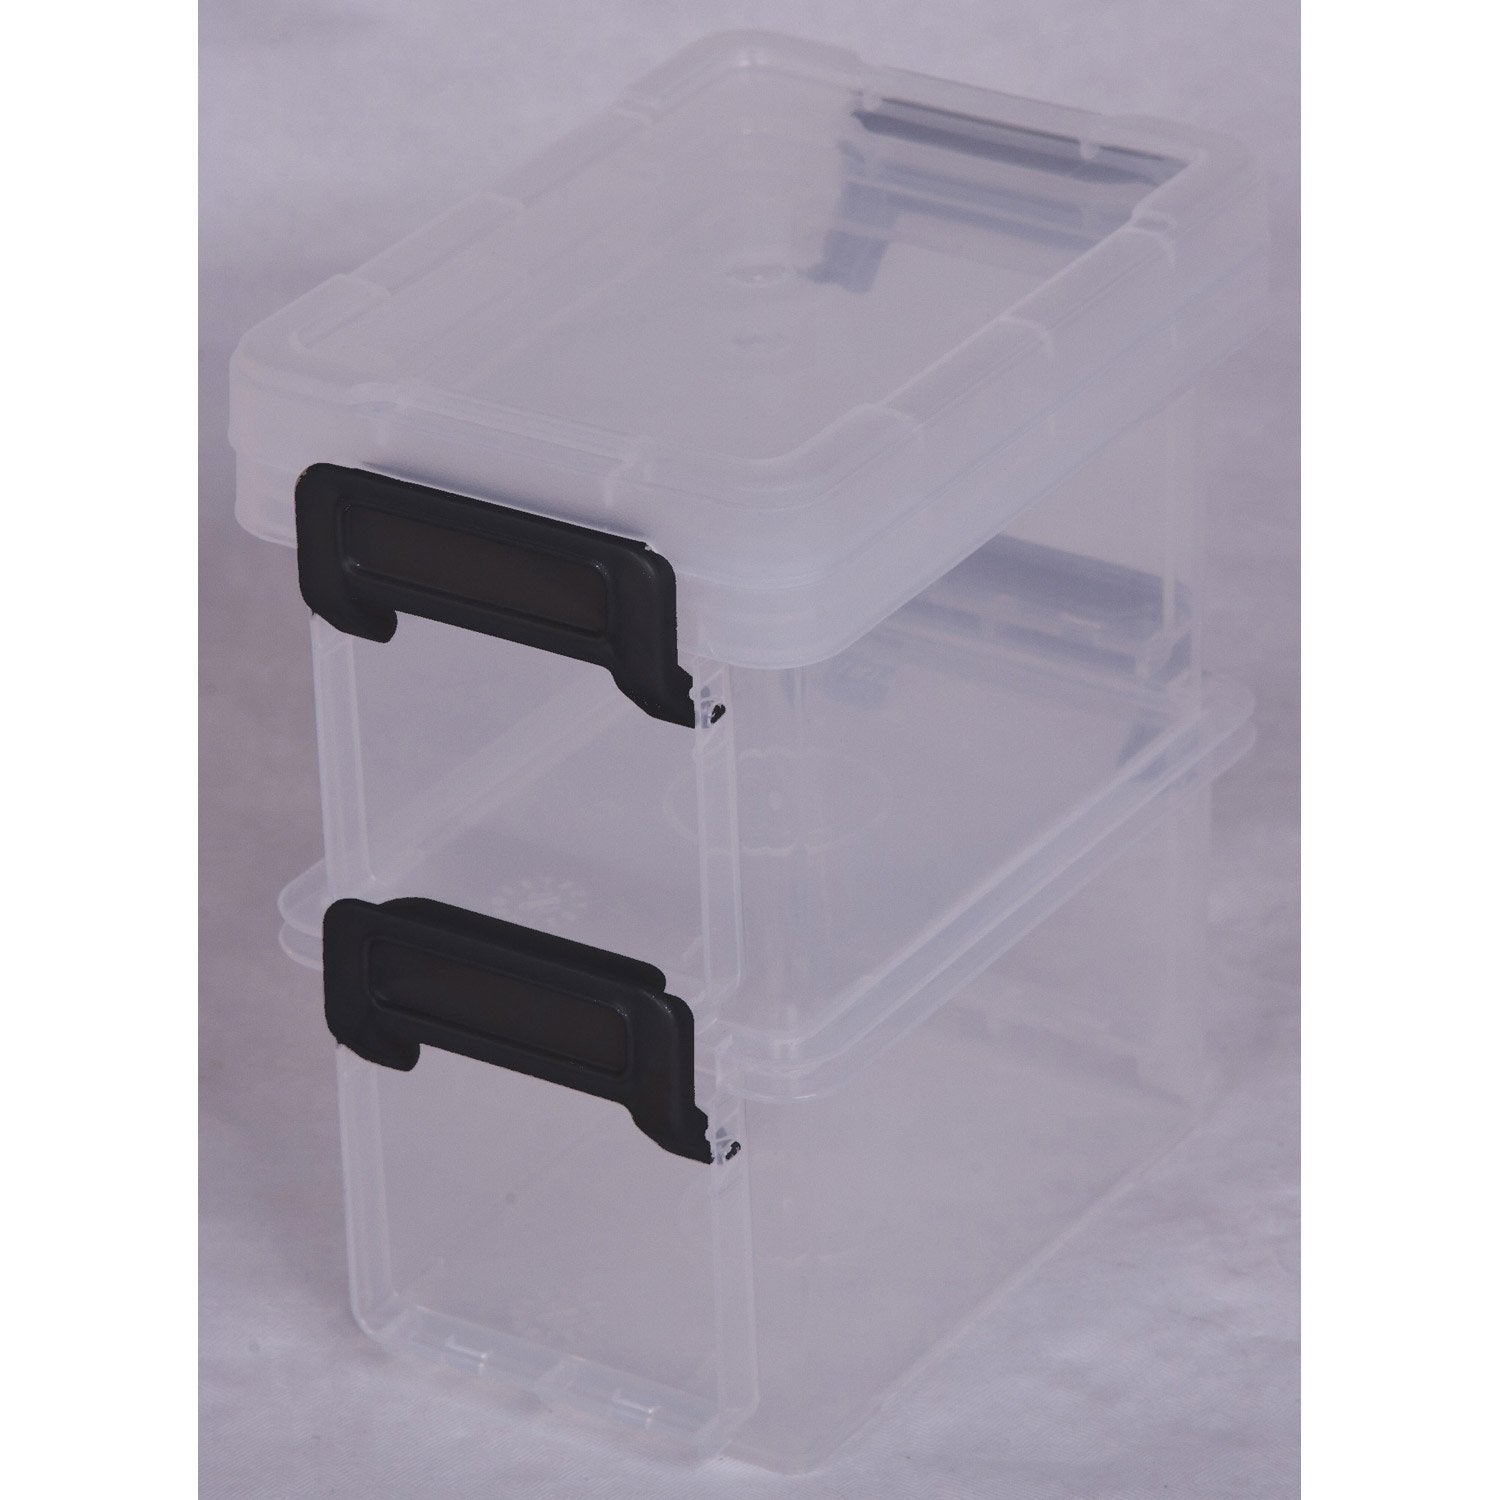 bo te de rangement little box en plastique l 8 2 x p 12 2 x h 7 cm 0 3 l leroy merlin. Black Bedroom Furniture Sets. Home Design Ideas